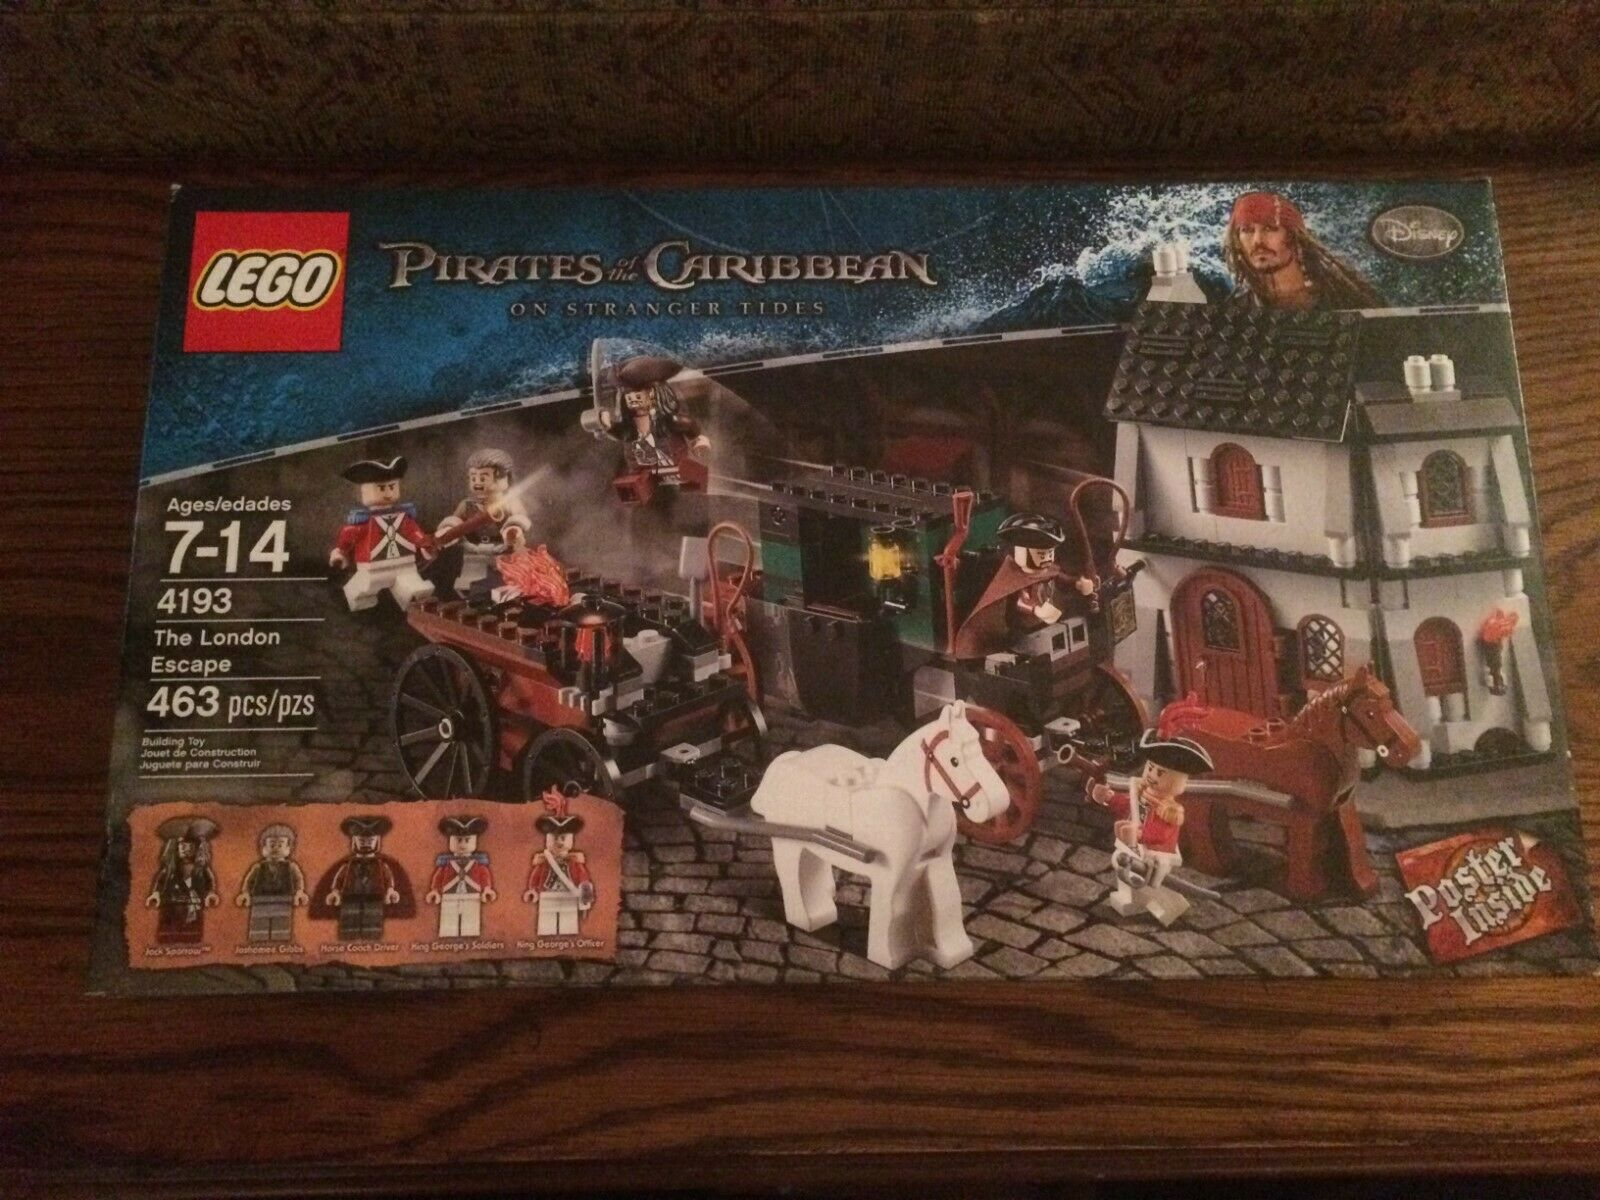 LEGO 4193 The London Escape from the Pirates of the autoibbean Series nuovo in scatola